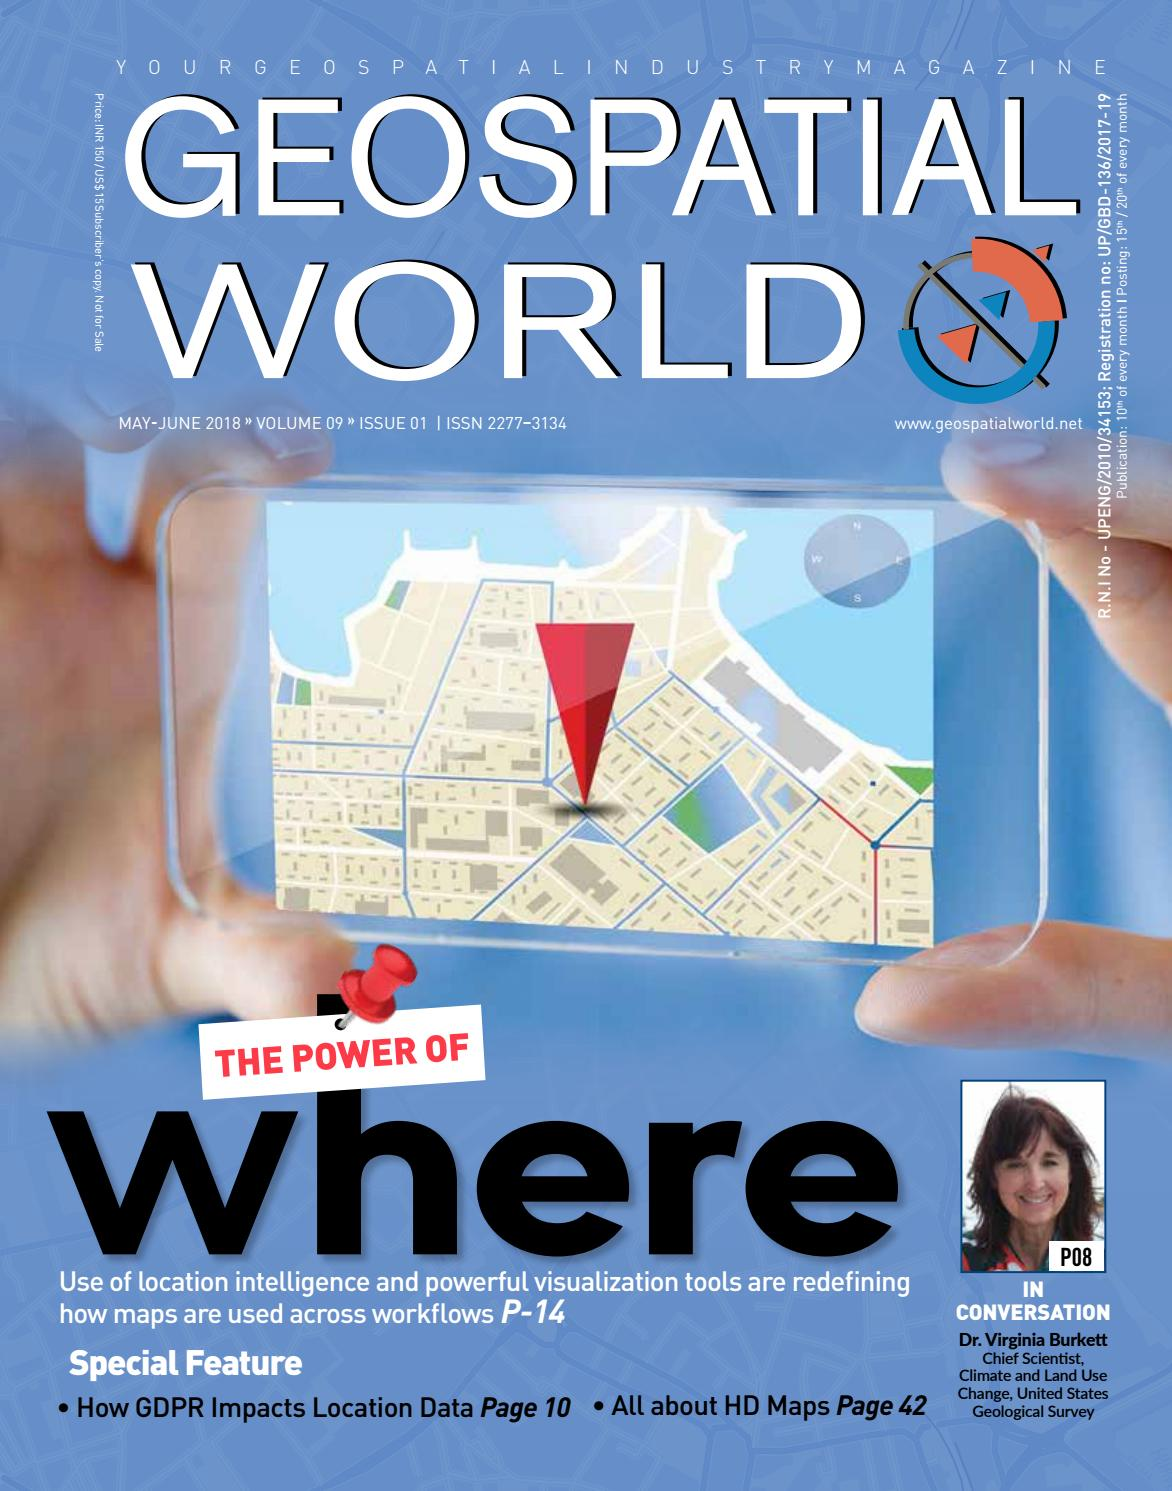 Geospatial World Magazine: May - June 2018 by Geospatial